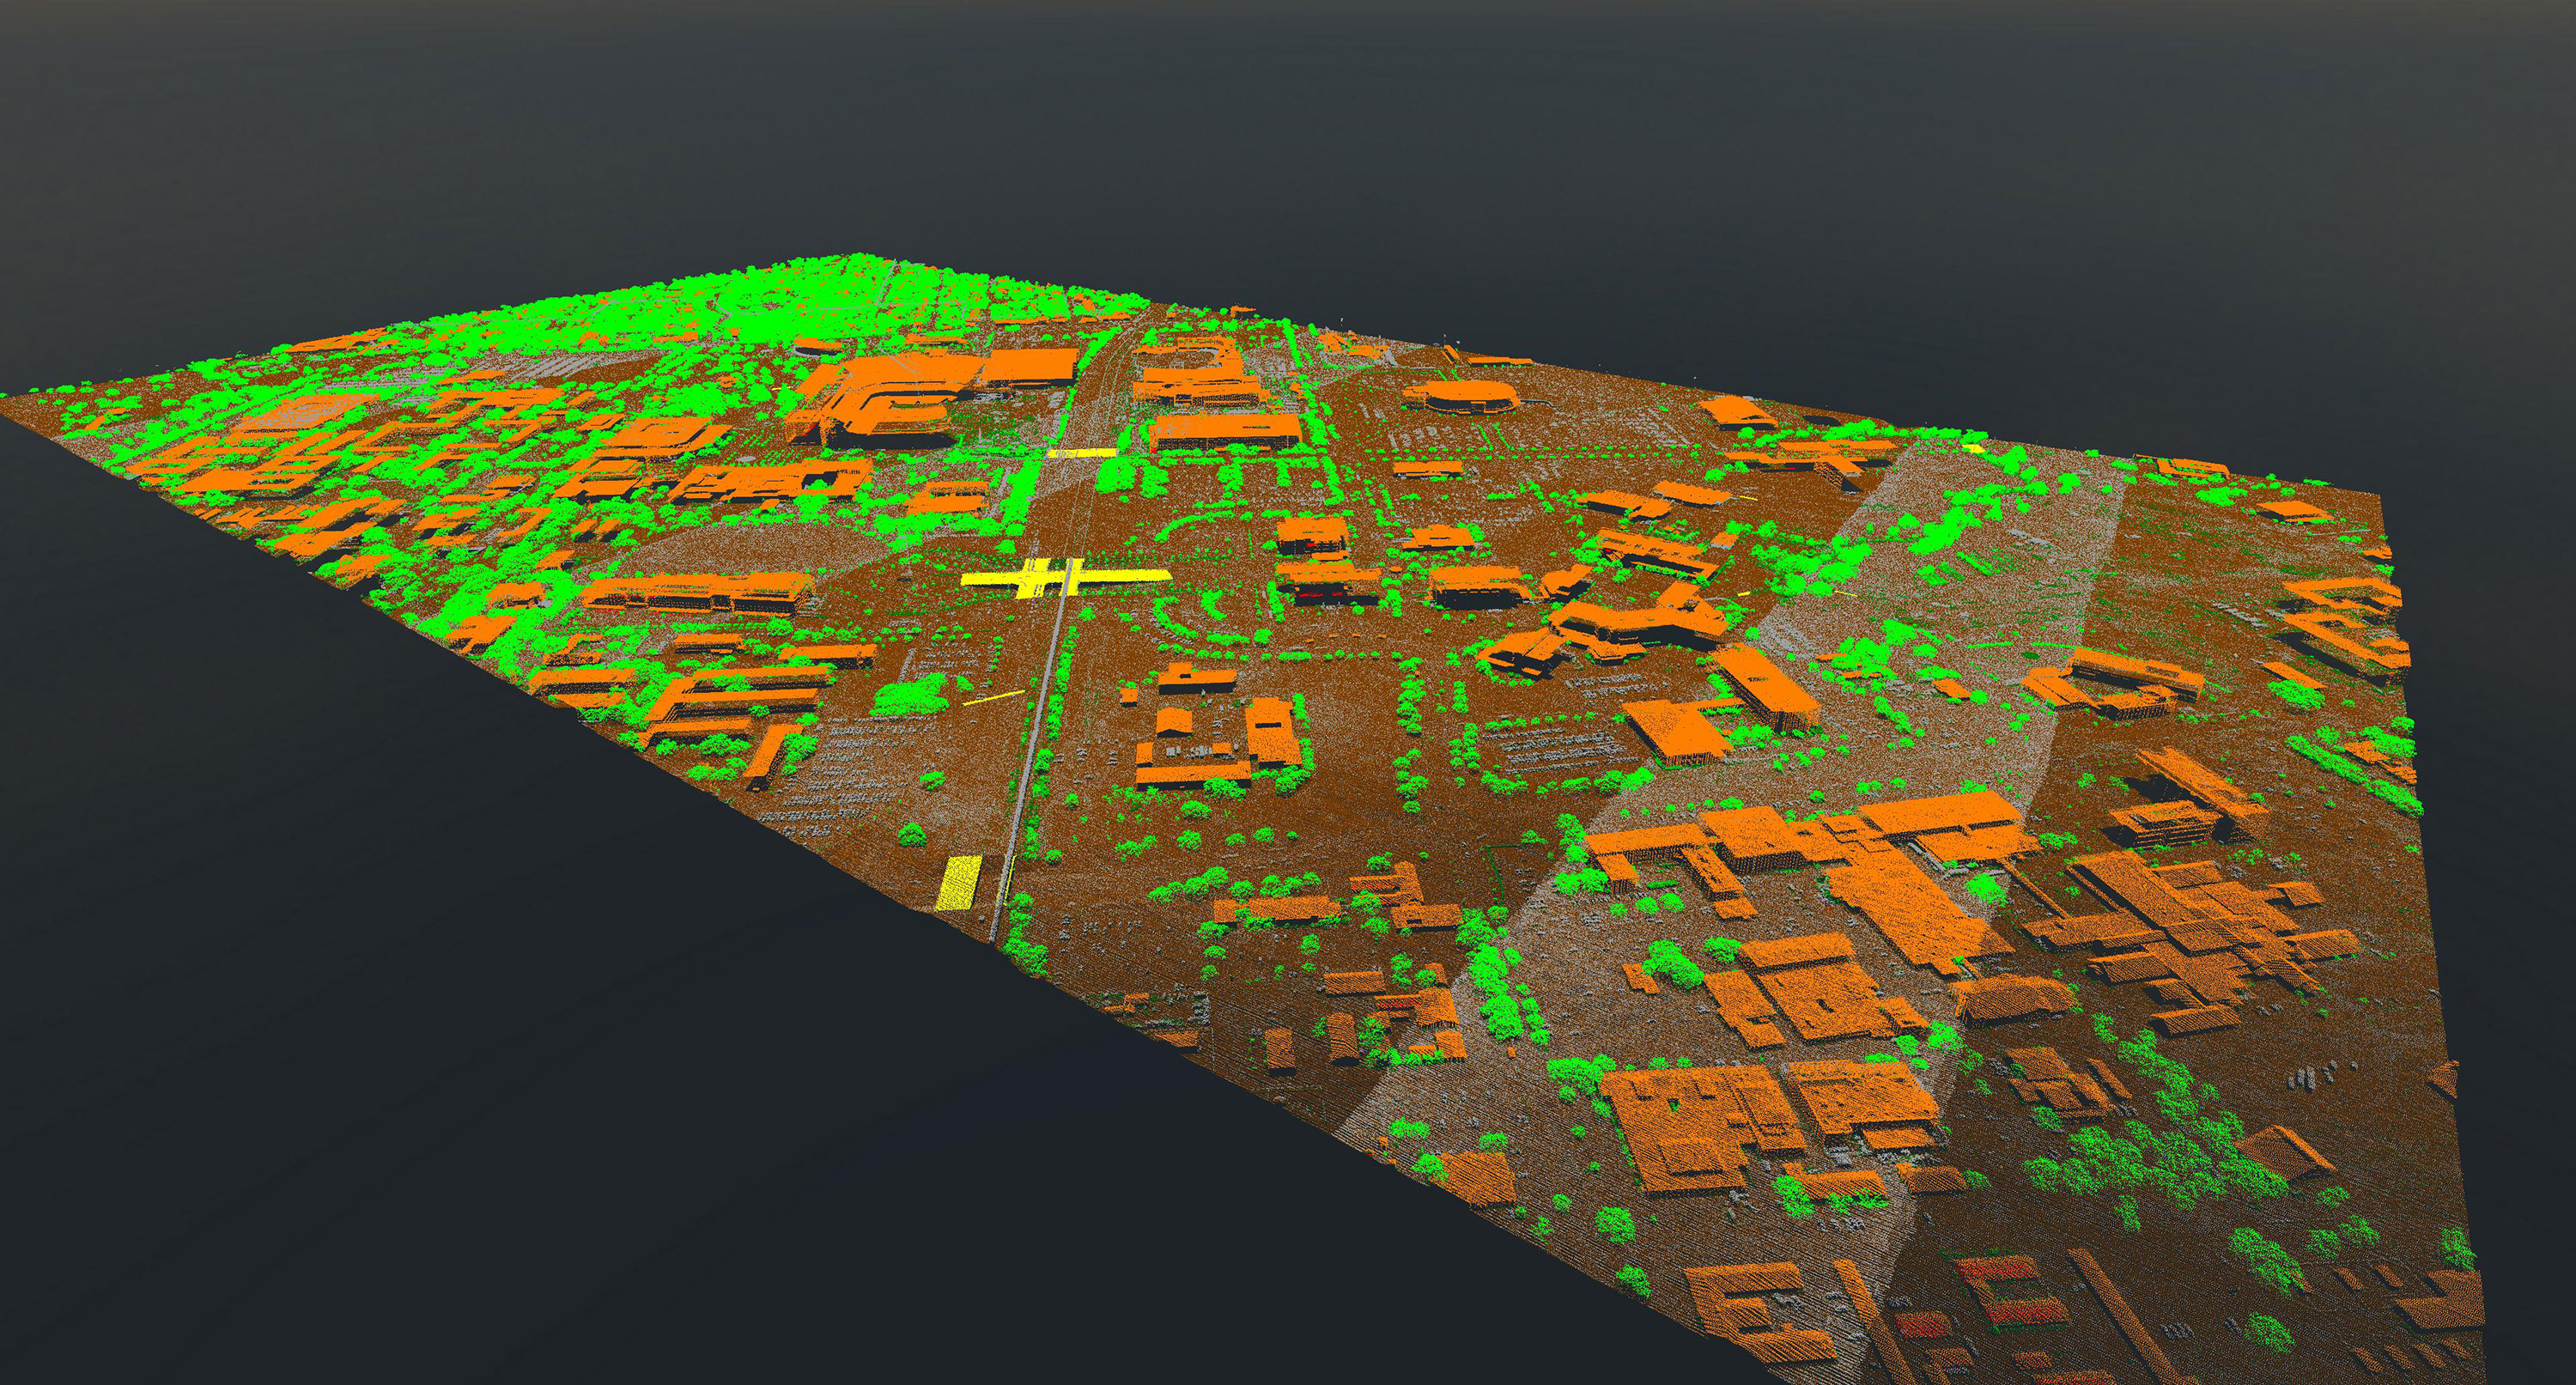 Lidar Point Cloud of College Station Texas